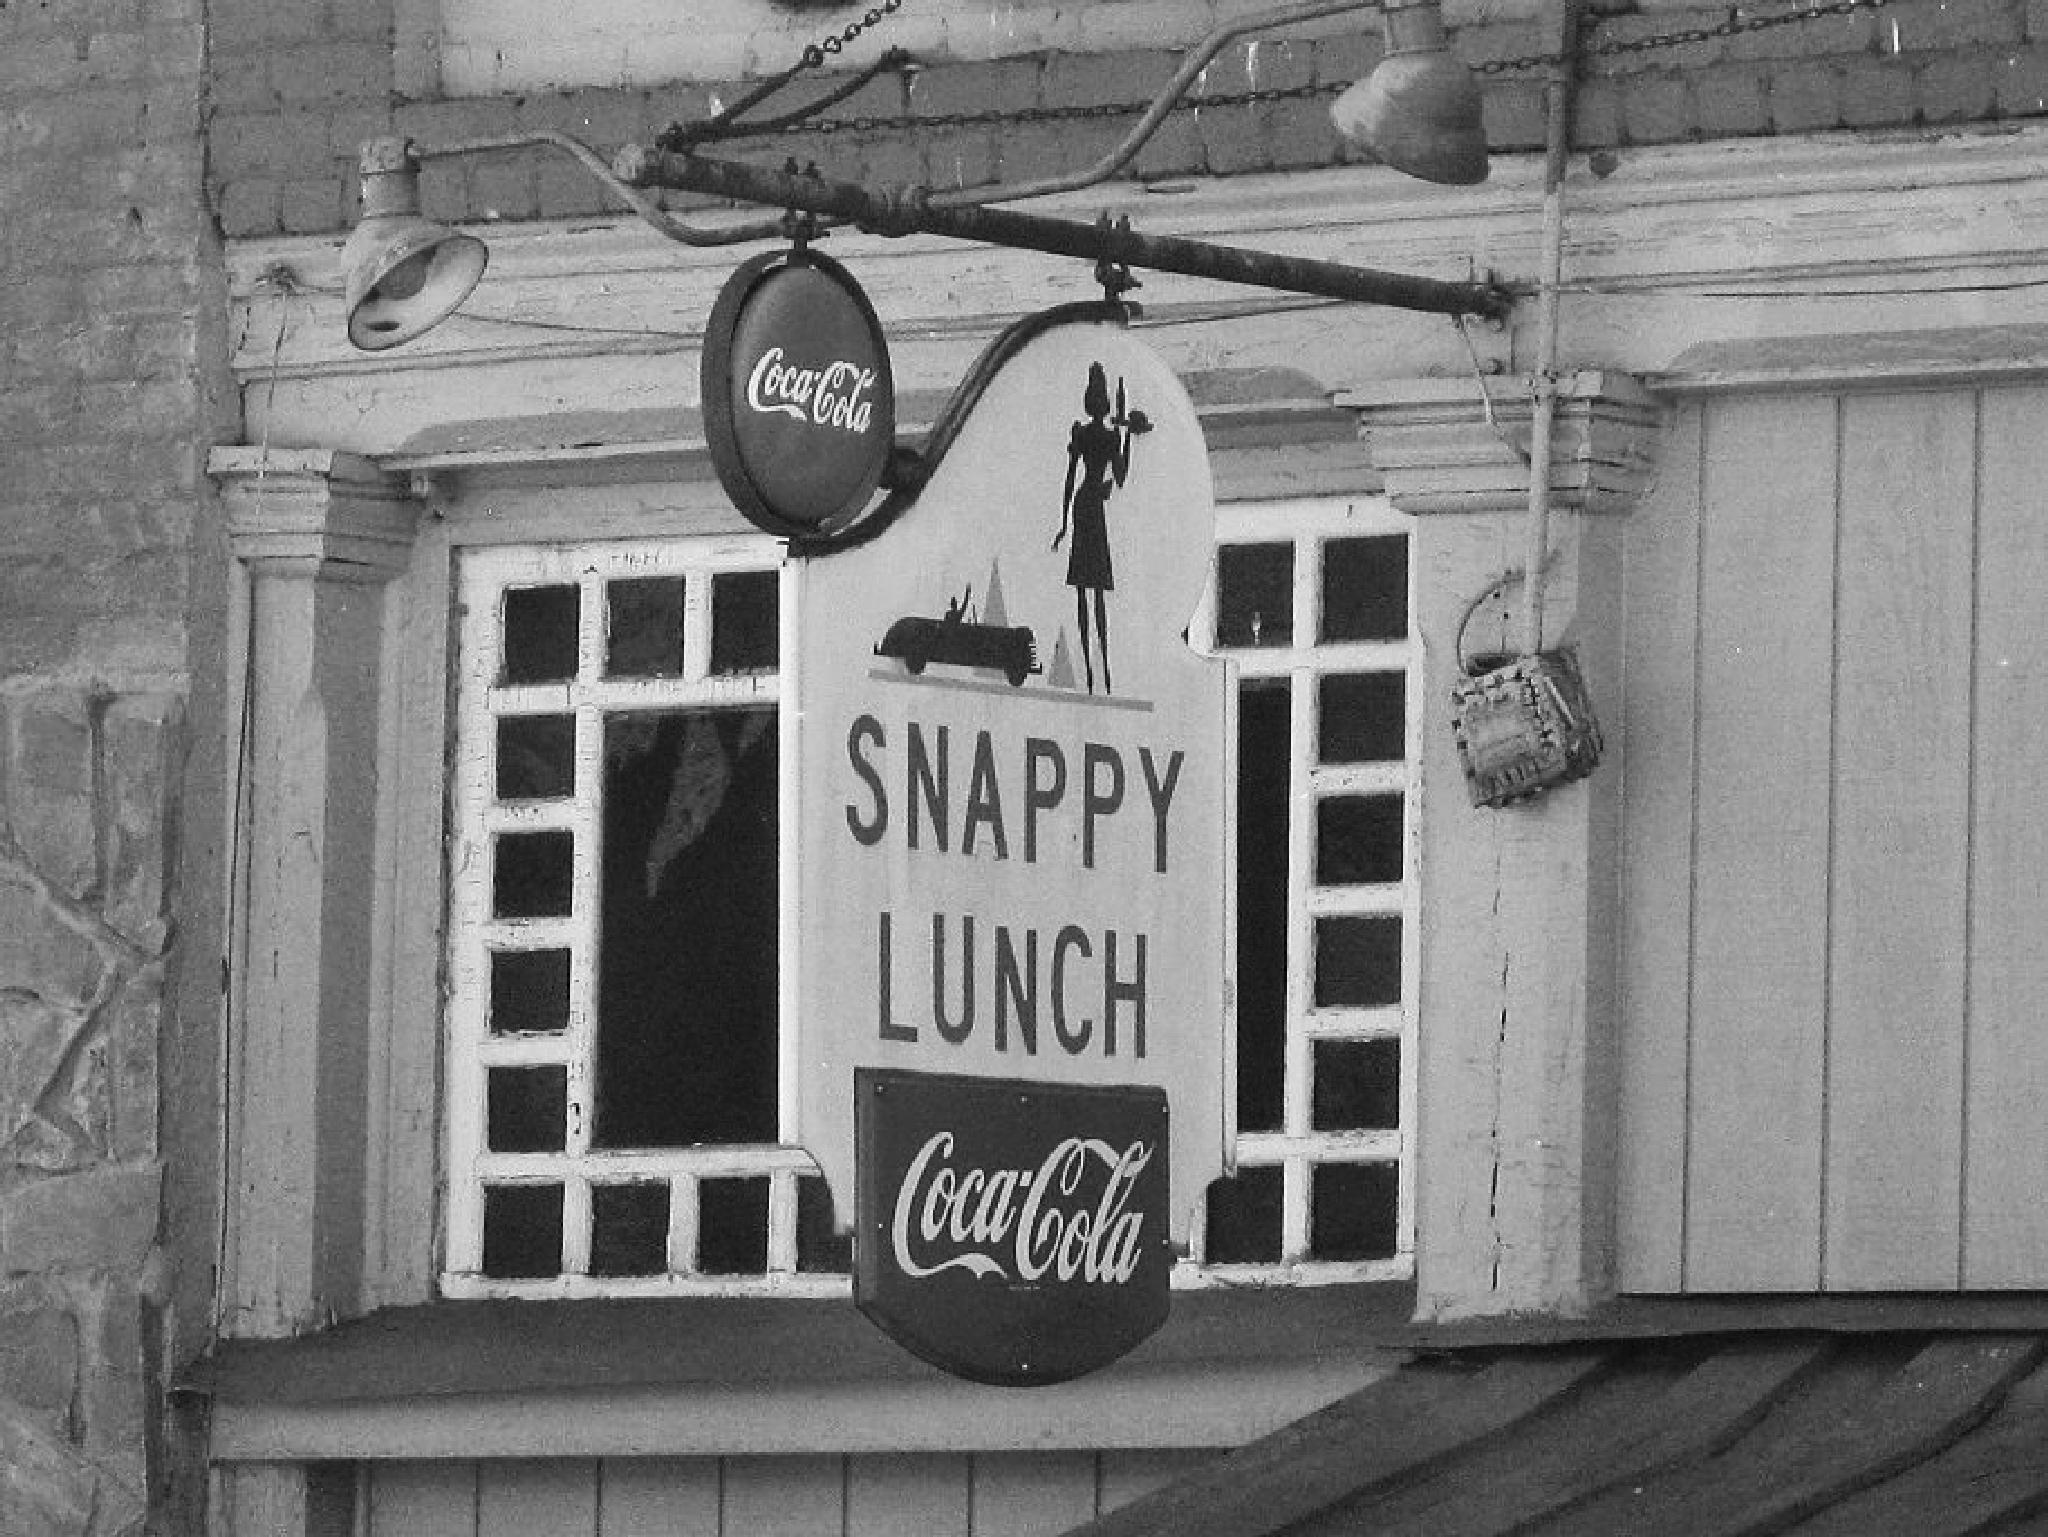 The Famous Snappy Lunch, Mt Airy, NC by wanda.nelson.562